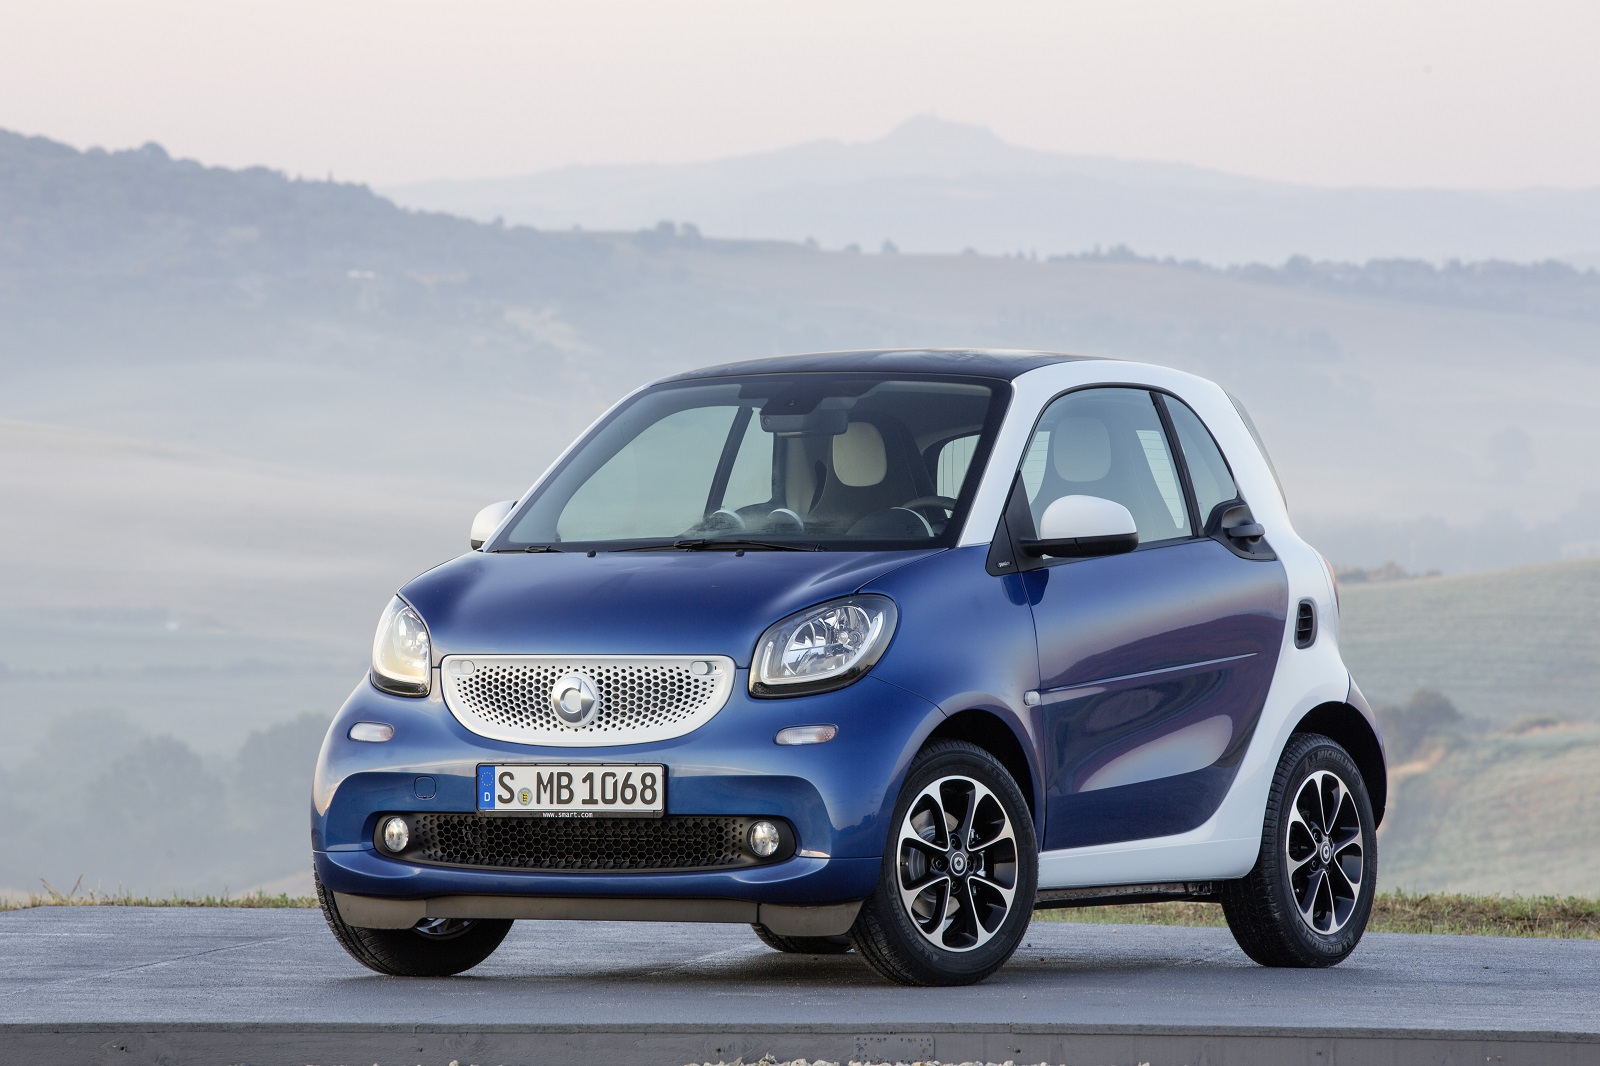 2016 smart fortwo Review, Ratings, Specs, Prices, and ...